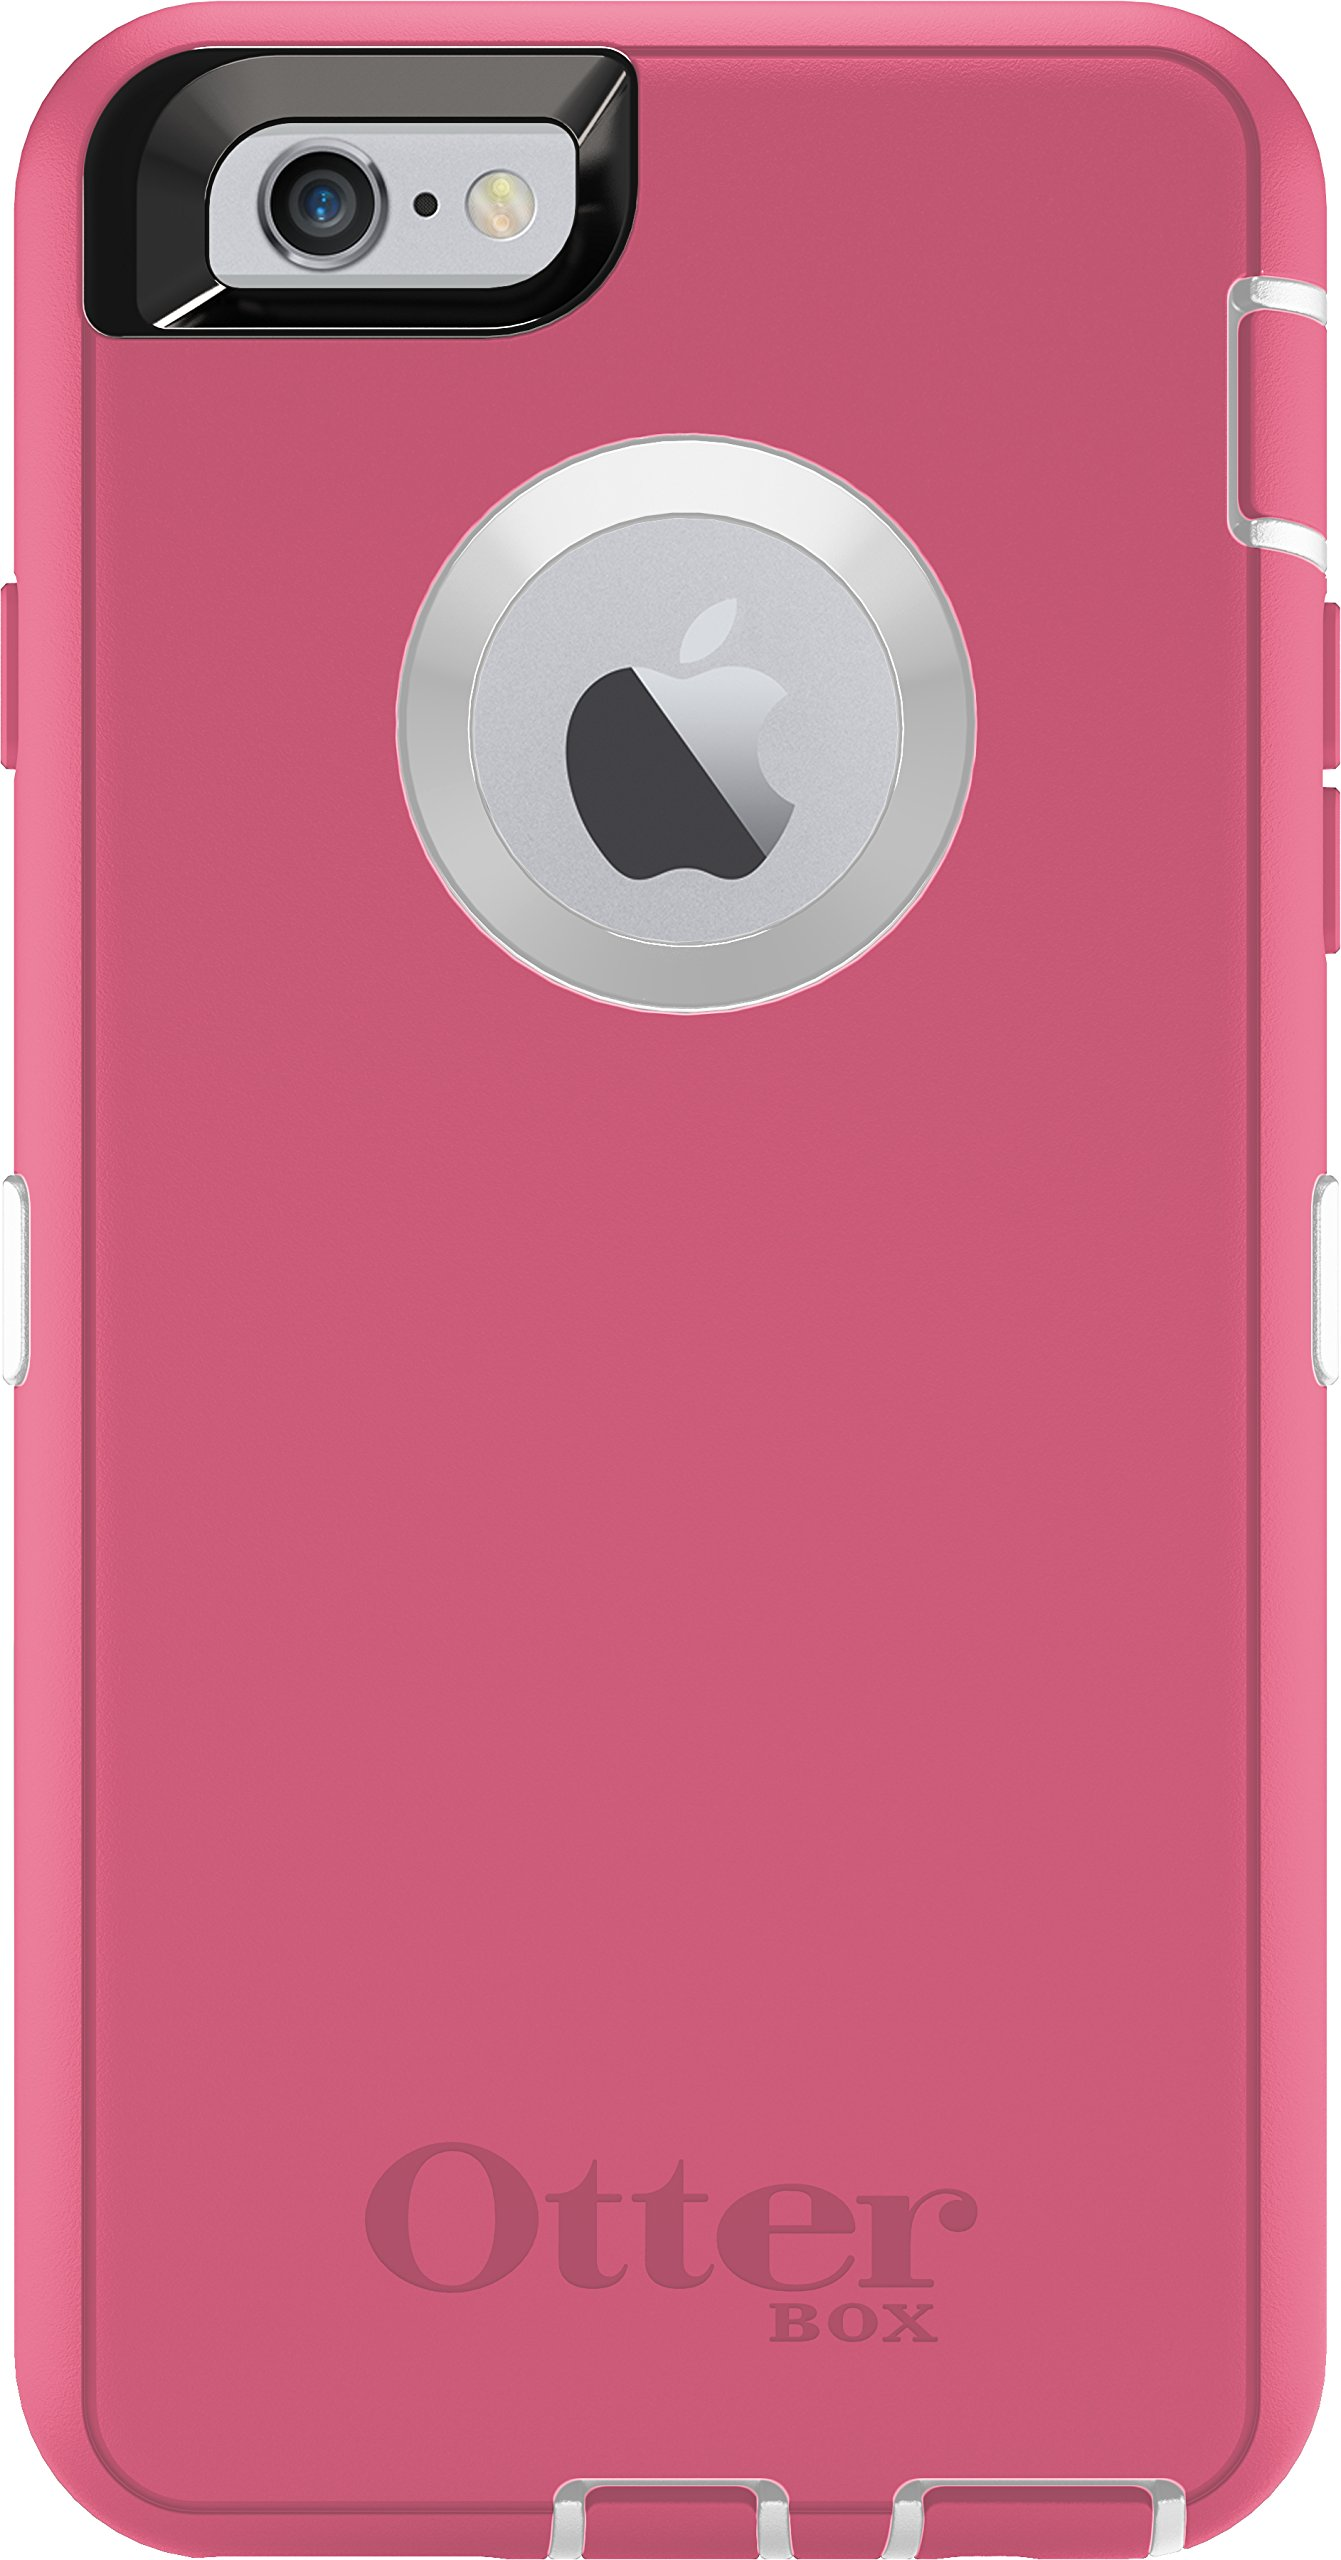 OtterBox Defender Series iPhone 6 Plus Only Case (5.5'' Version), Retail Packaging, Neon Rose (Whisper White/Blaze Pink)